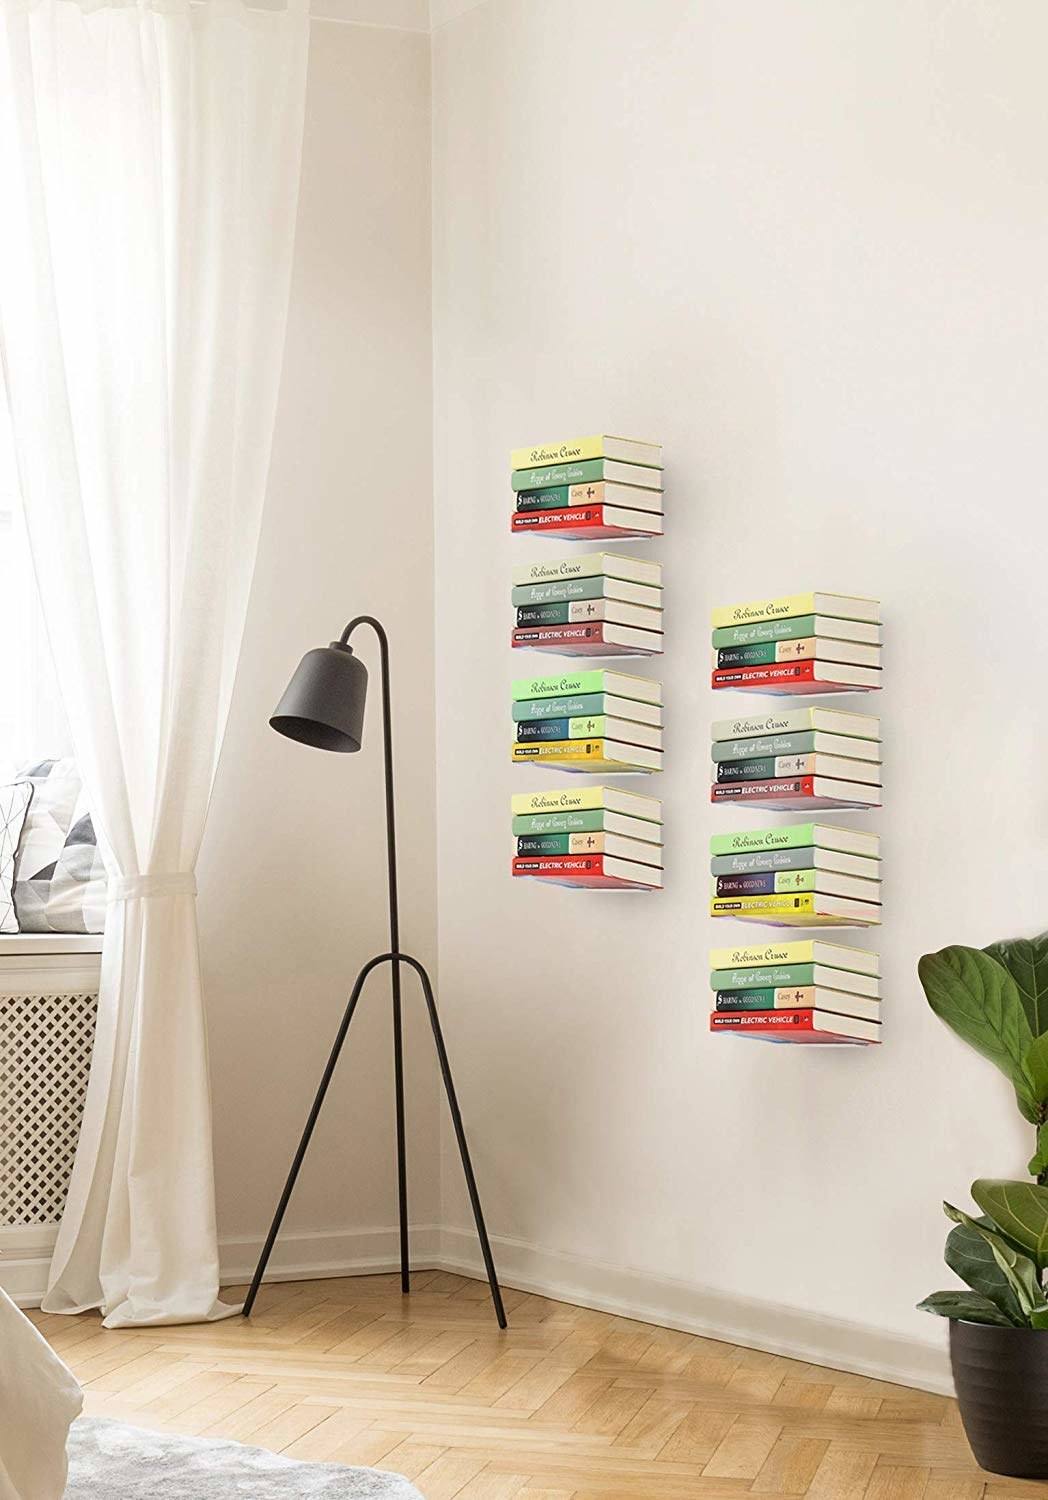 Flat metal shelves that give the illusion of being invisible when books are placed on them.